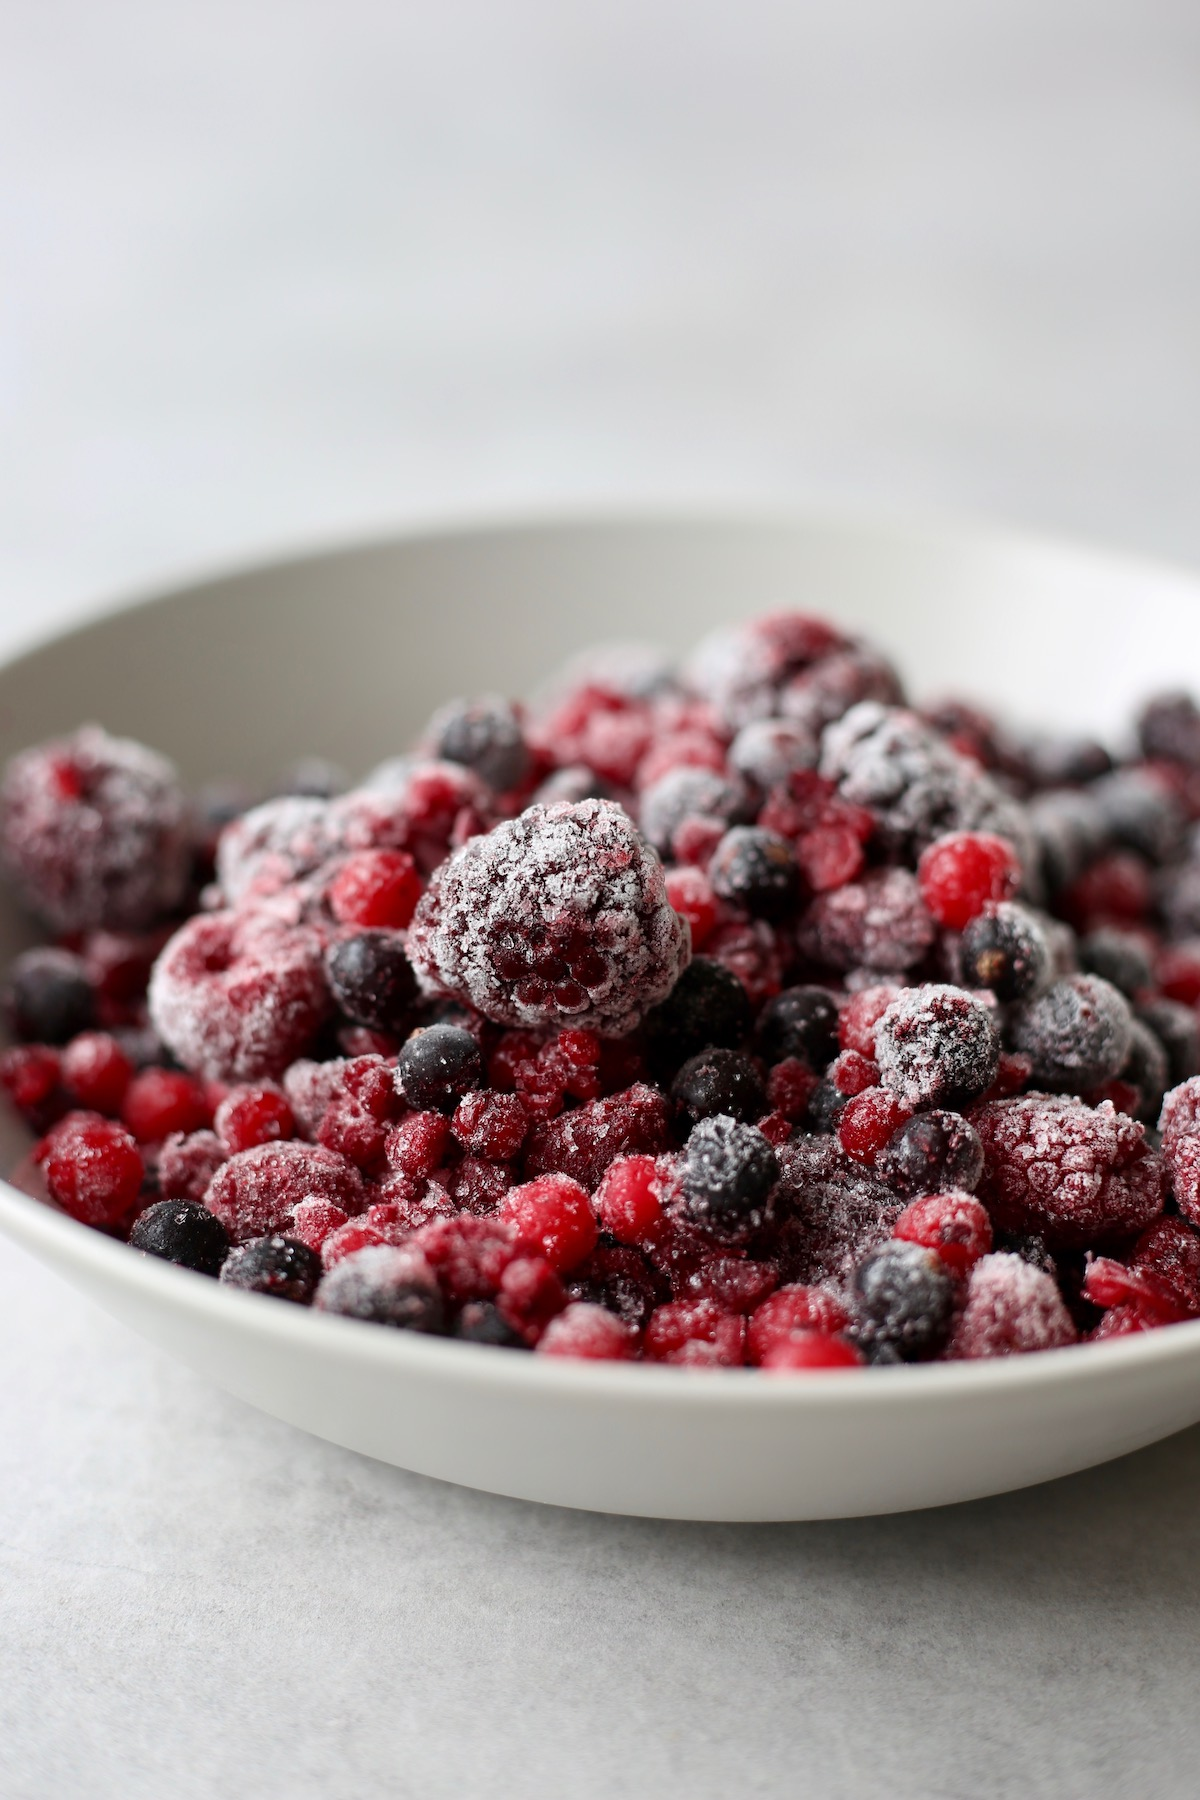 icy frozen berries in a bowl